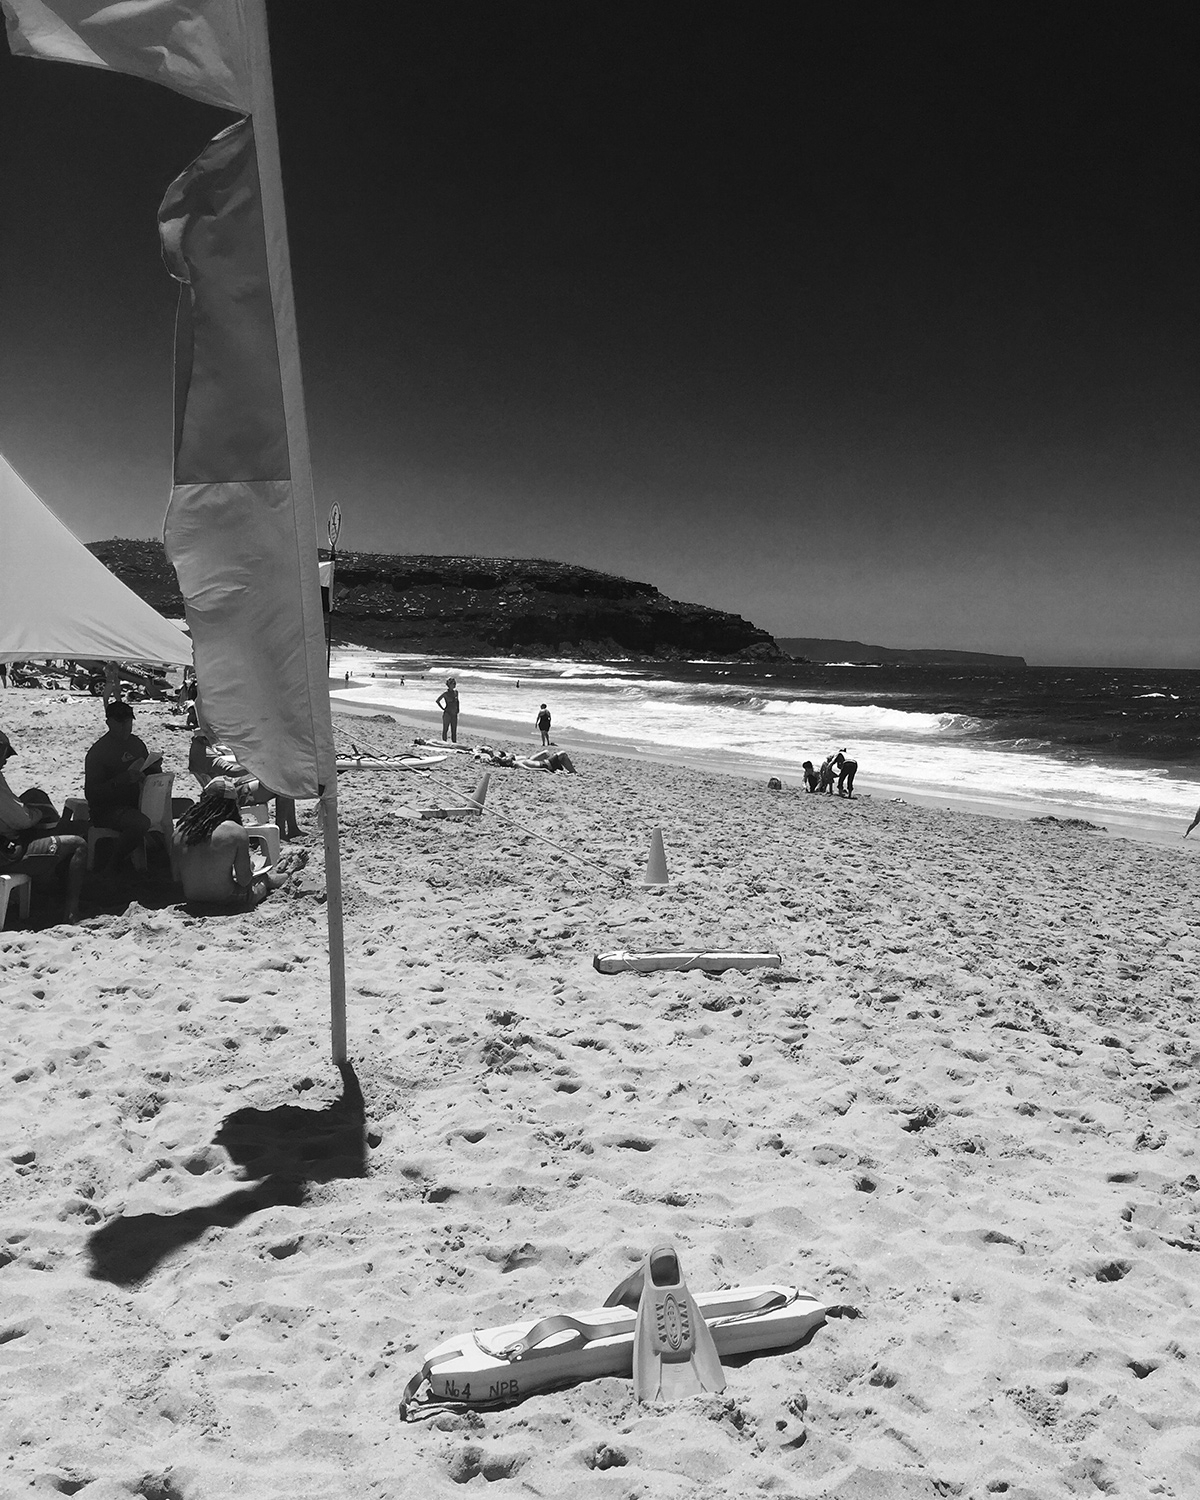 A black and white image of the Surf Lifesaving flags and groups of people sitting along the beach